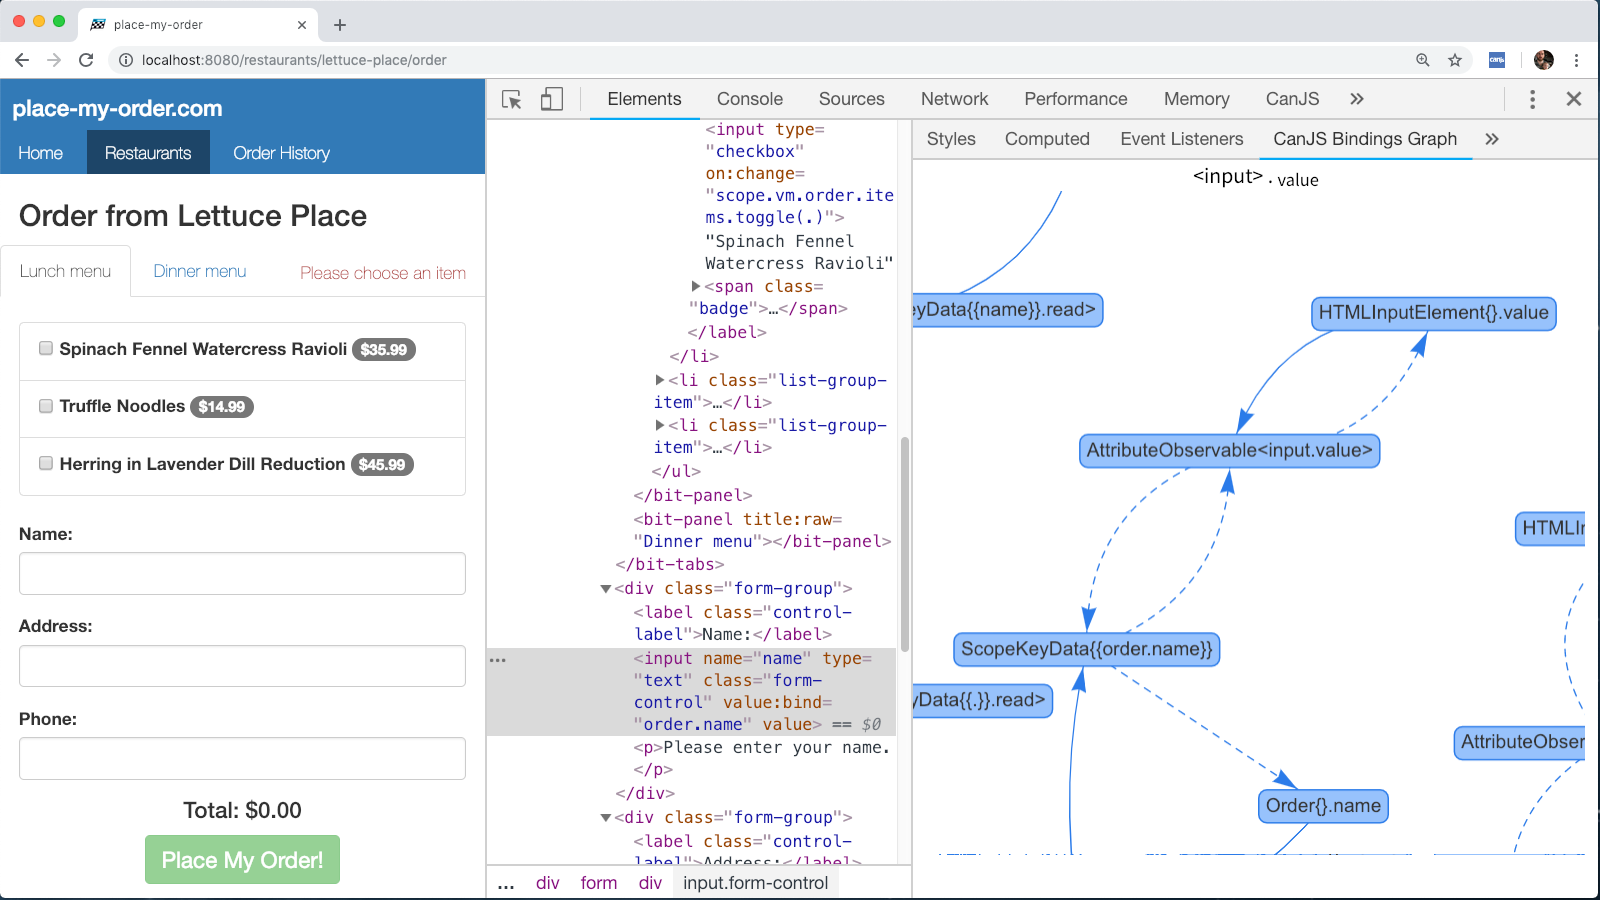 The CanJS Devtools Bindings Graph for Element